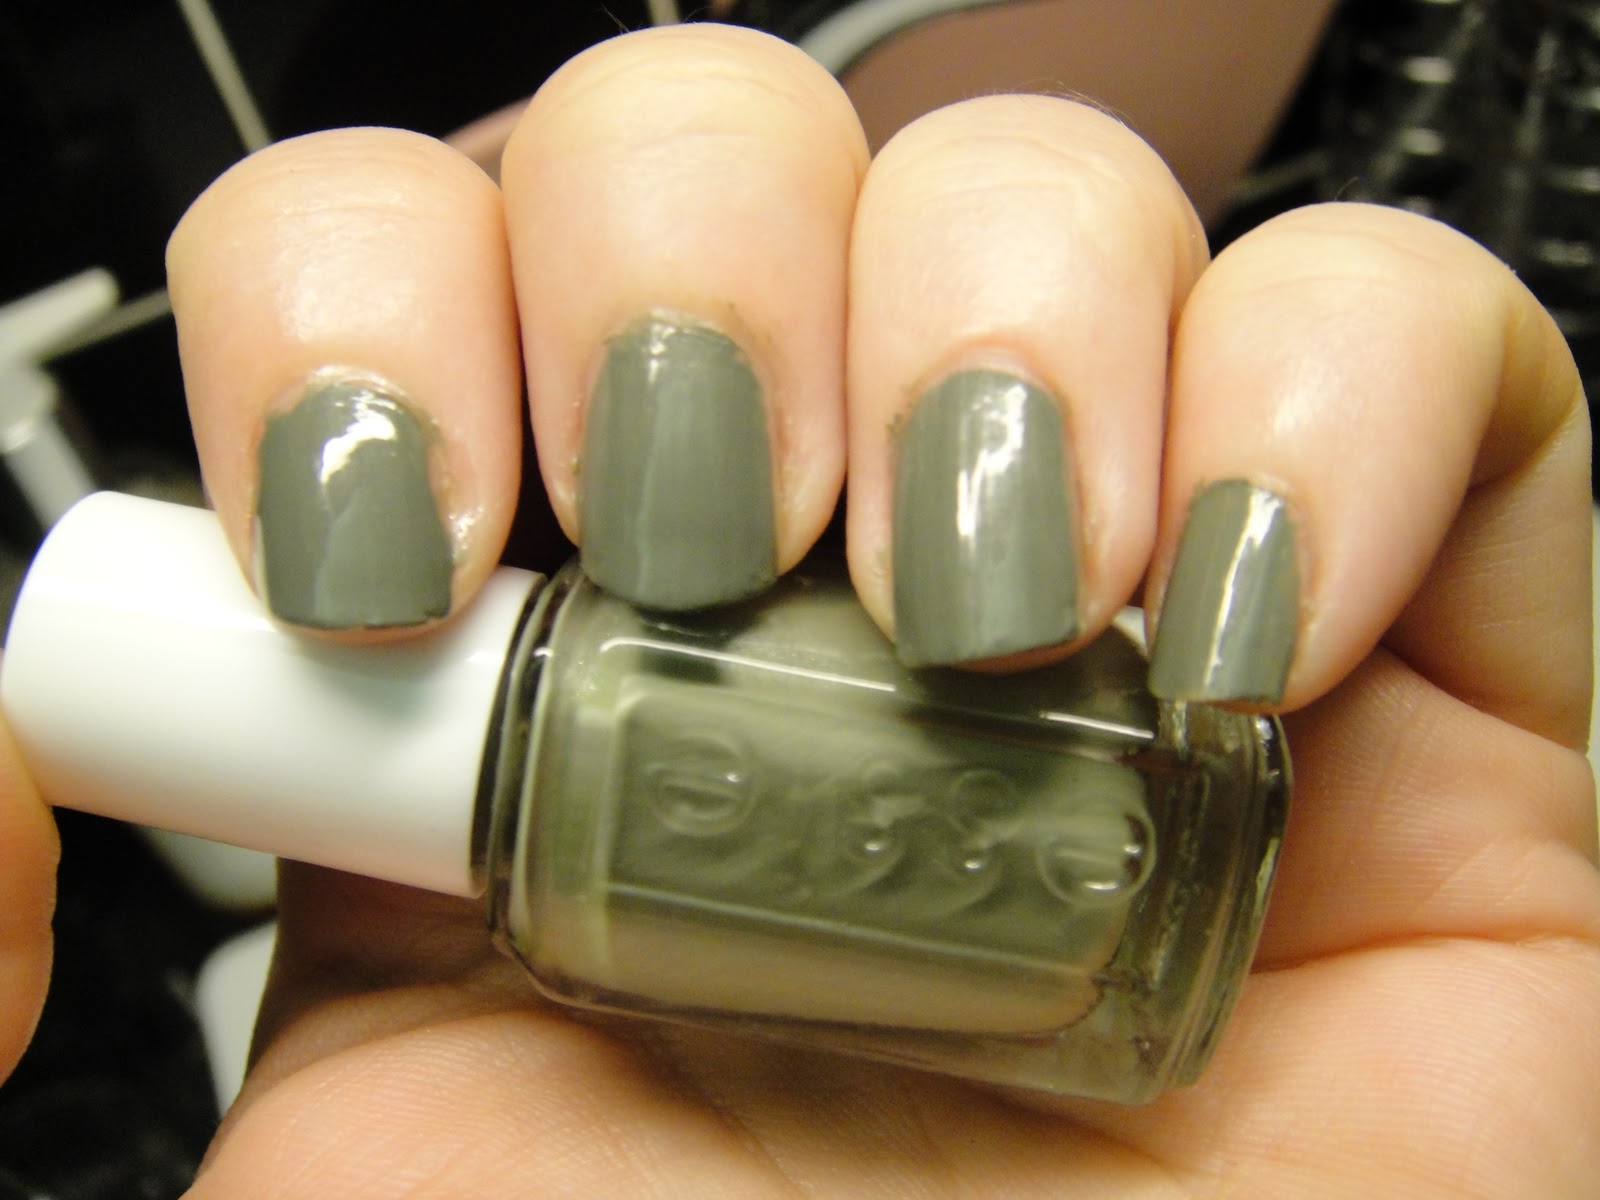 Nail of the Day - Essie: Sew Psyched - Get Lippie